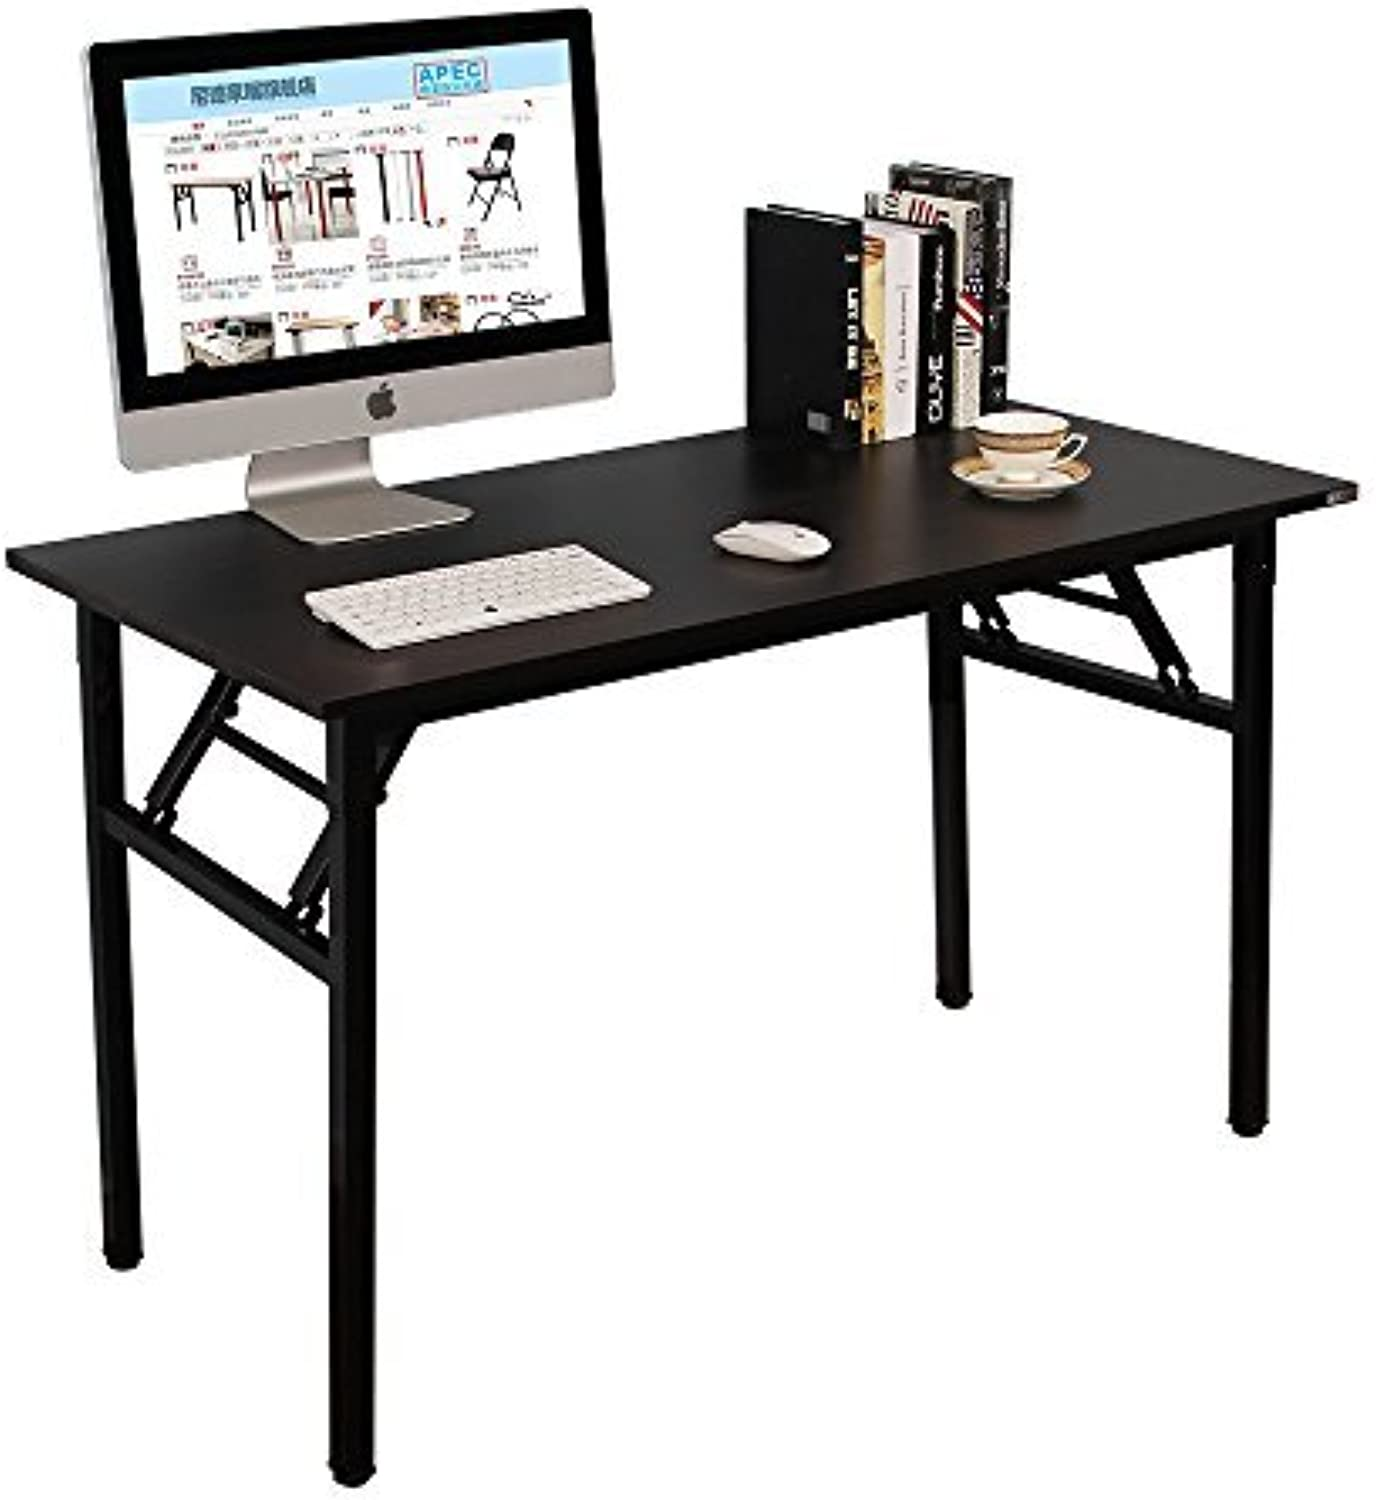 NeedHome Computer Desk 47  Office Desk Folding Table Computer Table Workstation No Install Needed,Black AC5CB-120-HCA